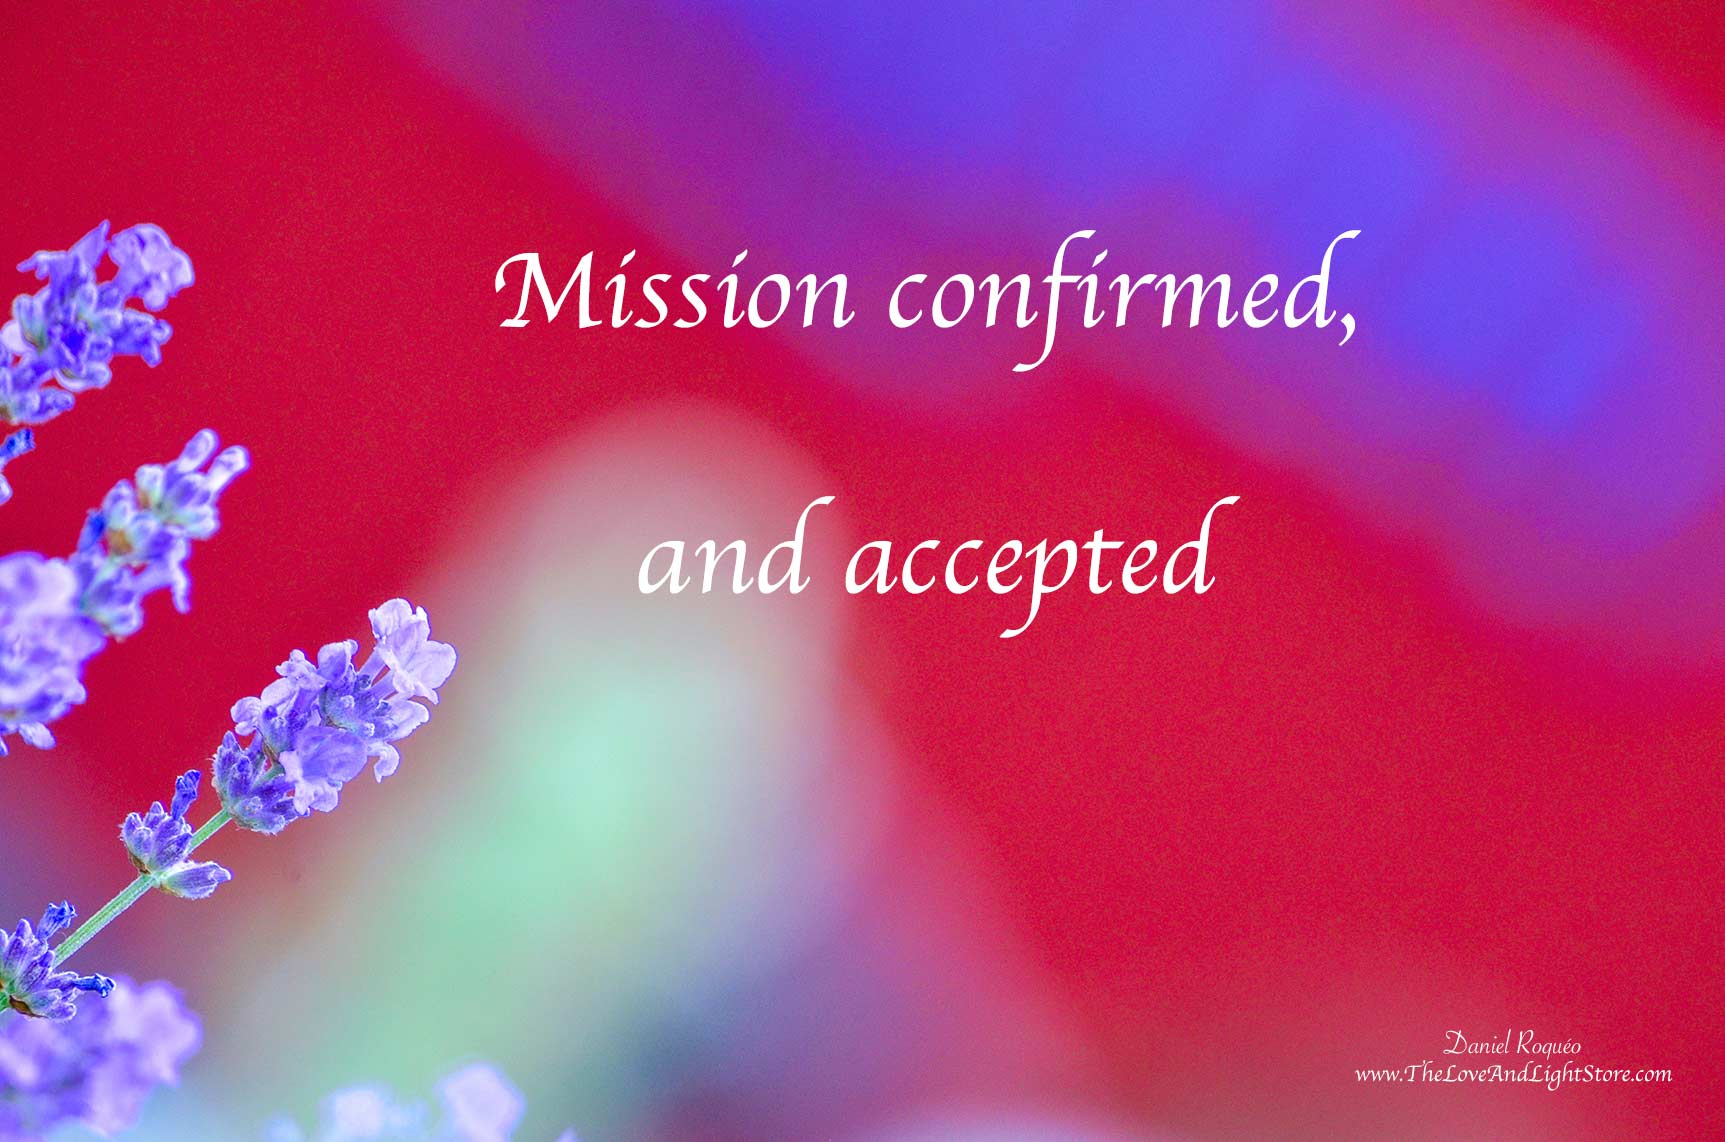 The mission I recently caught has been confirmed, through the grace of God it has now expanded further. Thank you God for guiding and leading me forth.